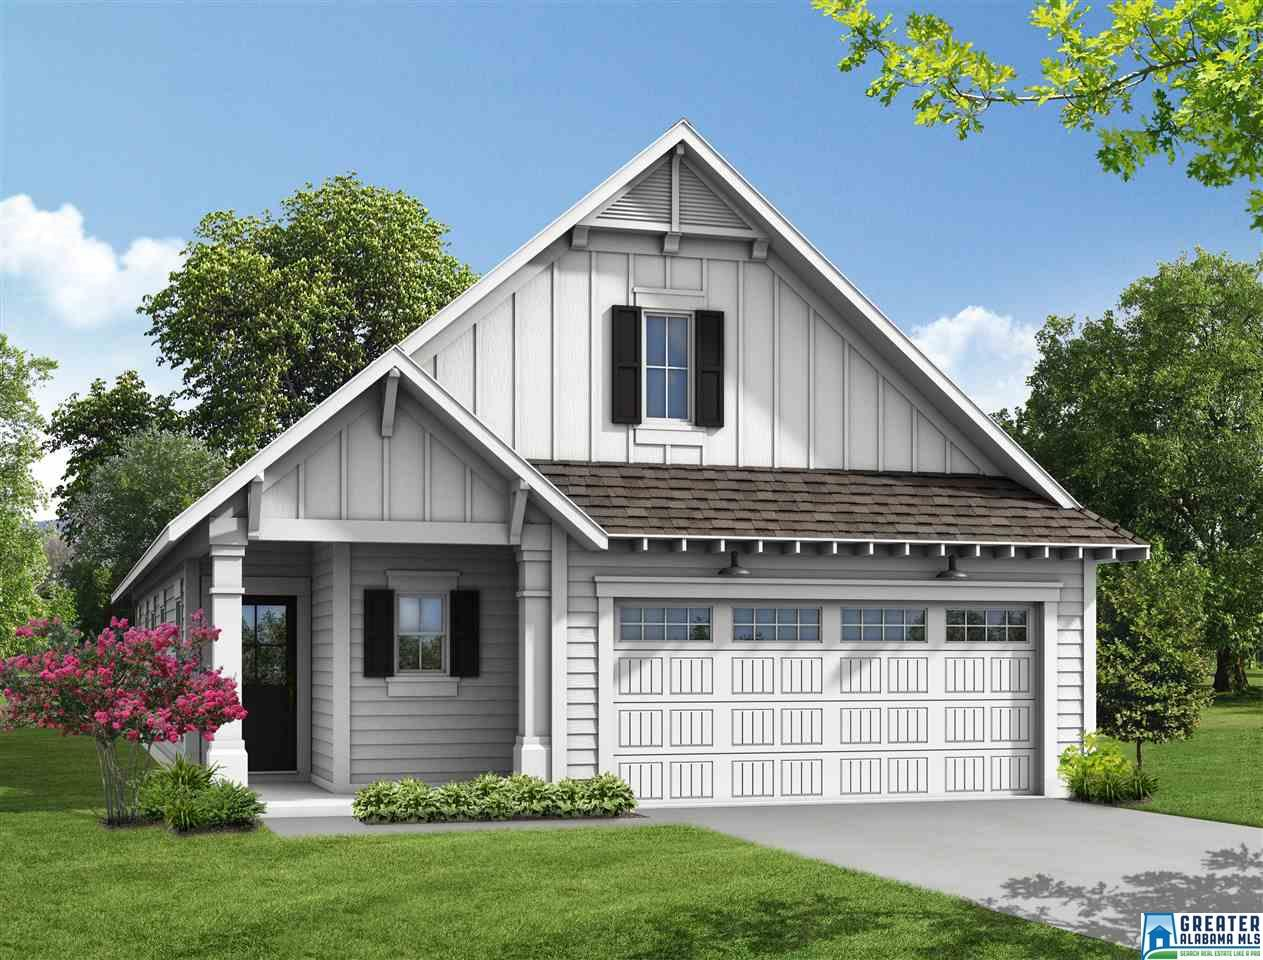 Grants Mill Valley - New homes in Irondale 825491